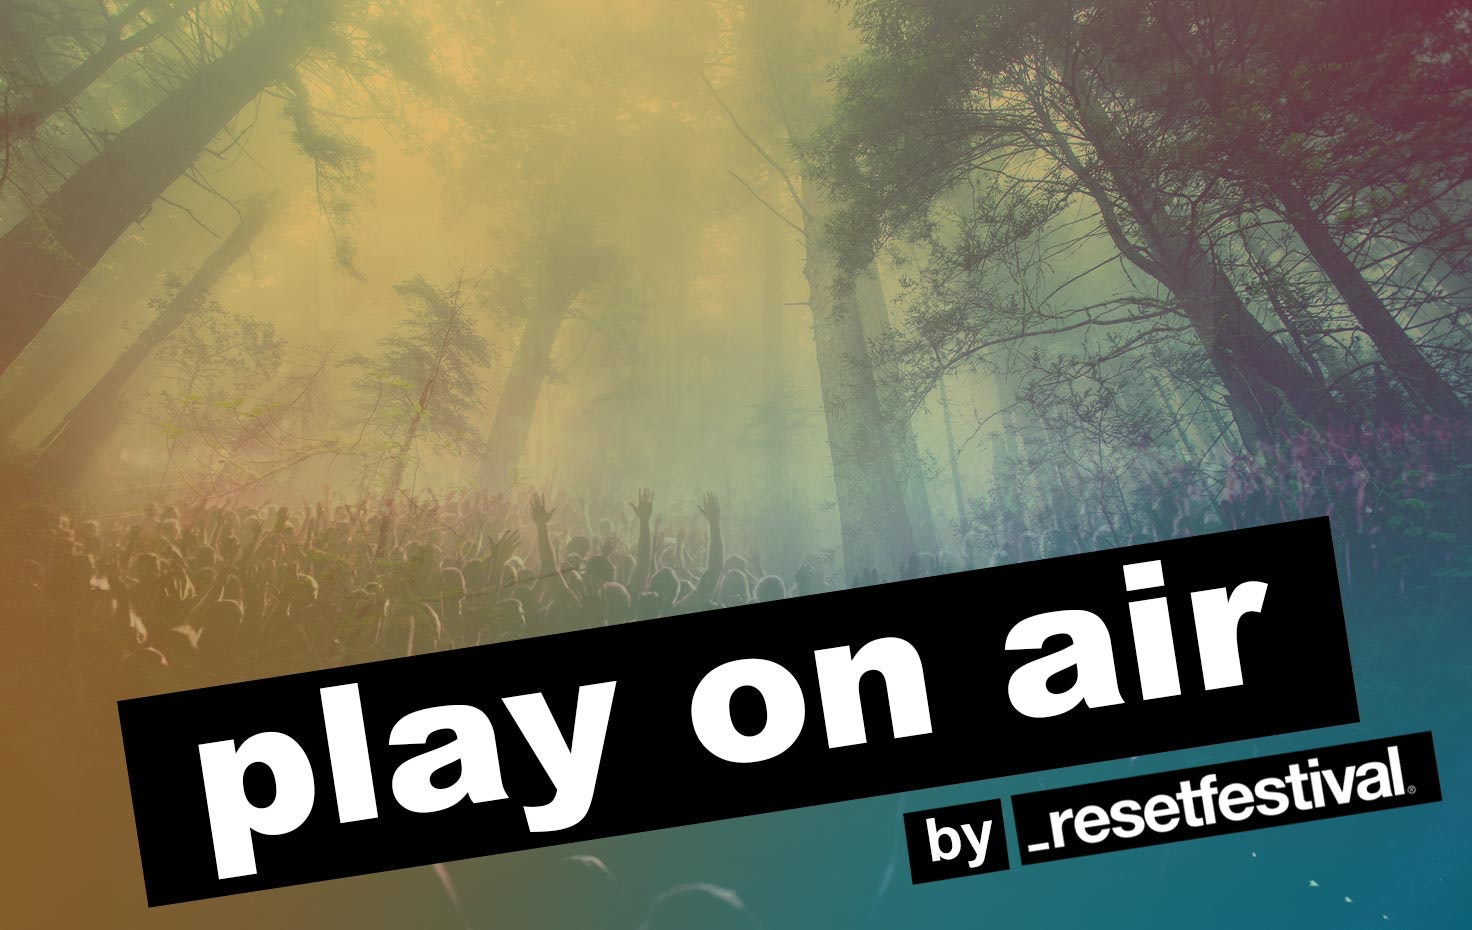 Play on air